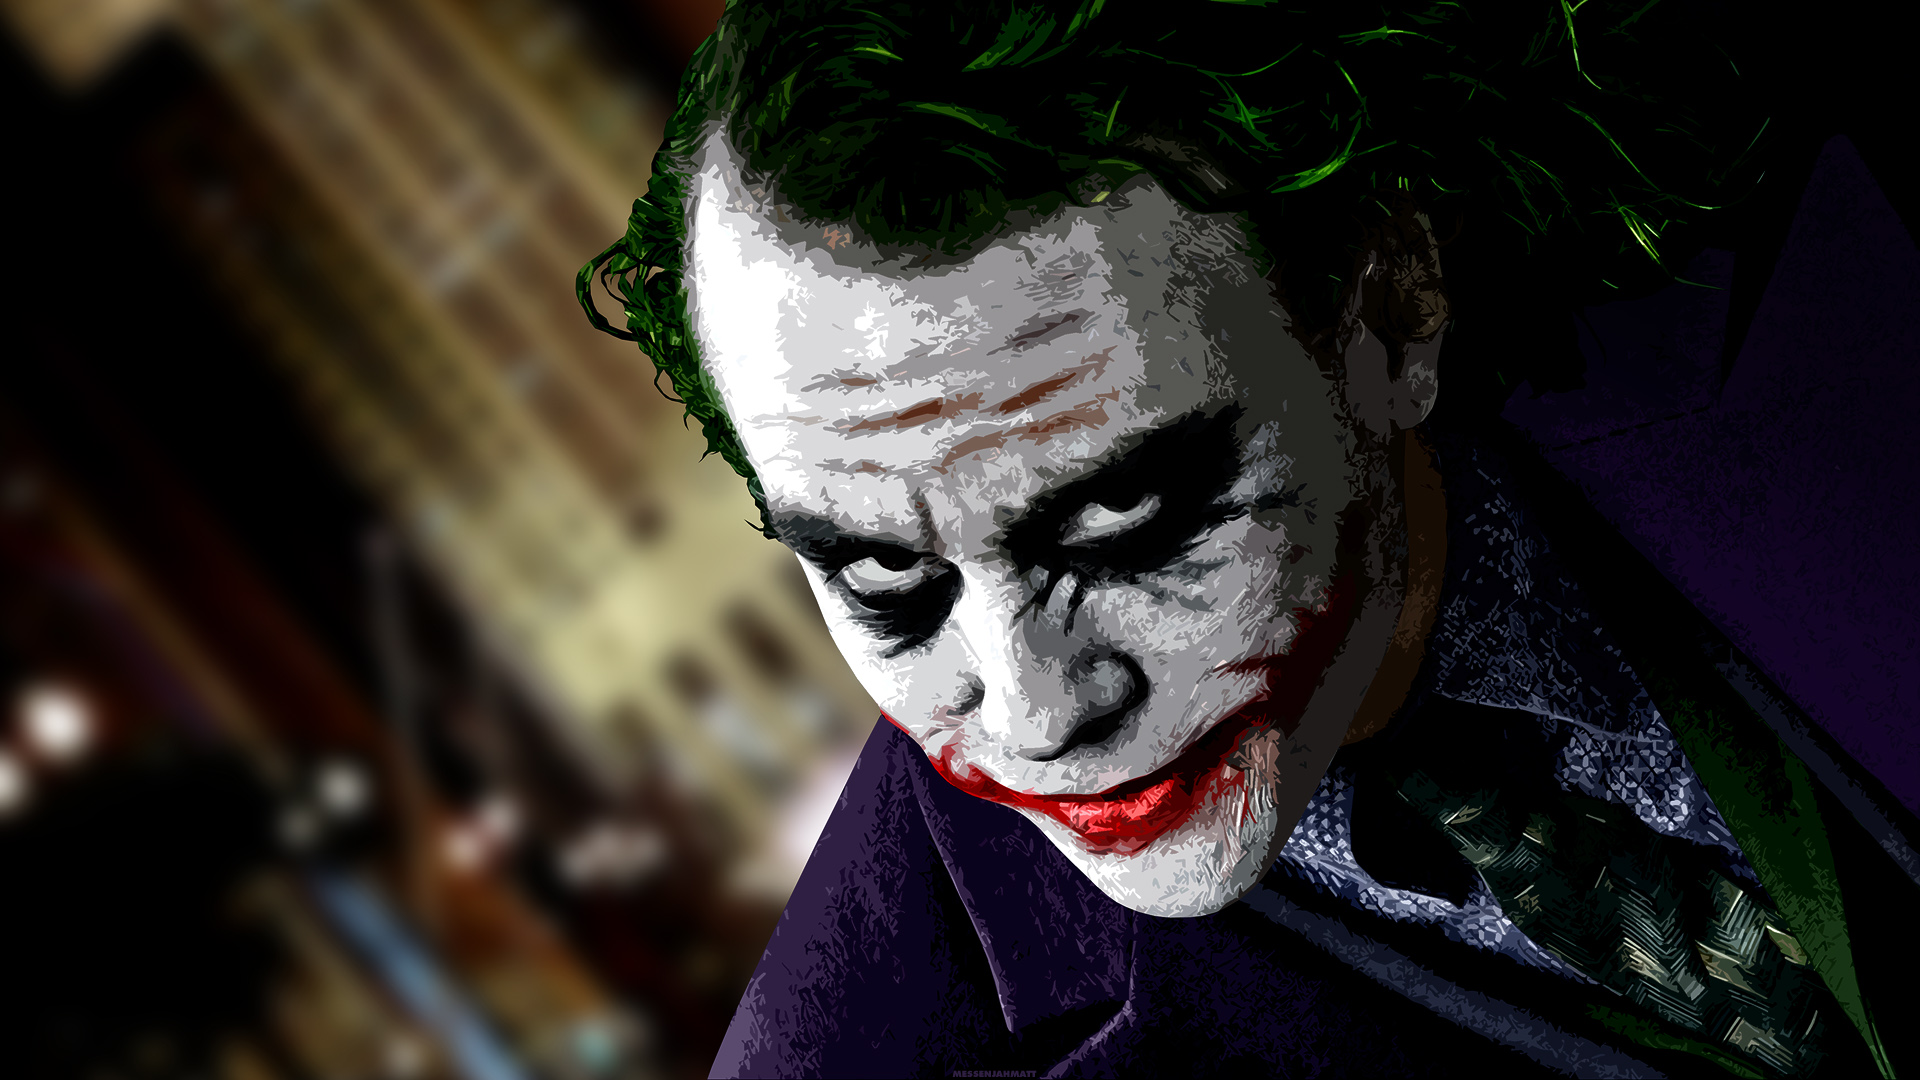 tags joker dark dark knight knight the joker the dark knight date 13 1920x1080